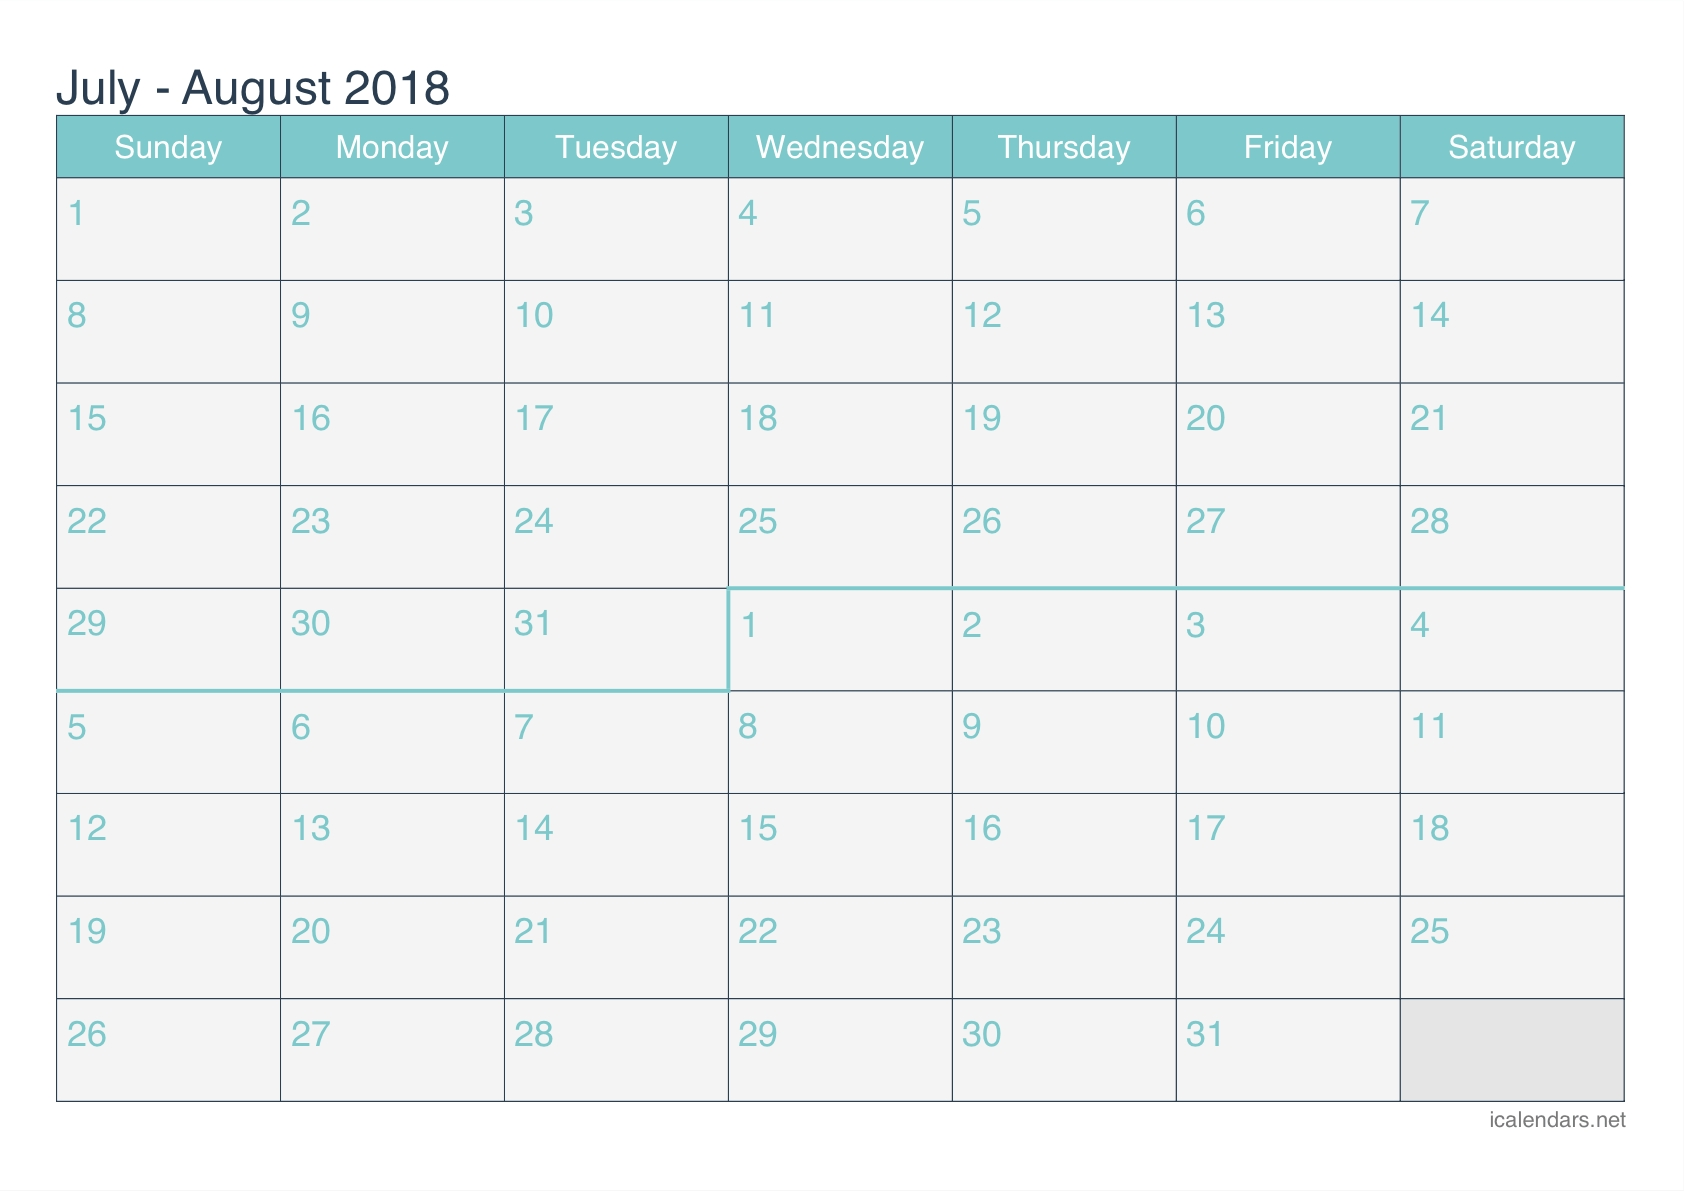 July And August 2018 Printable Calendar - Icalendars intended for June And July Printable Calendars